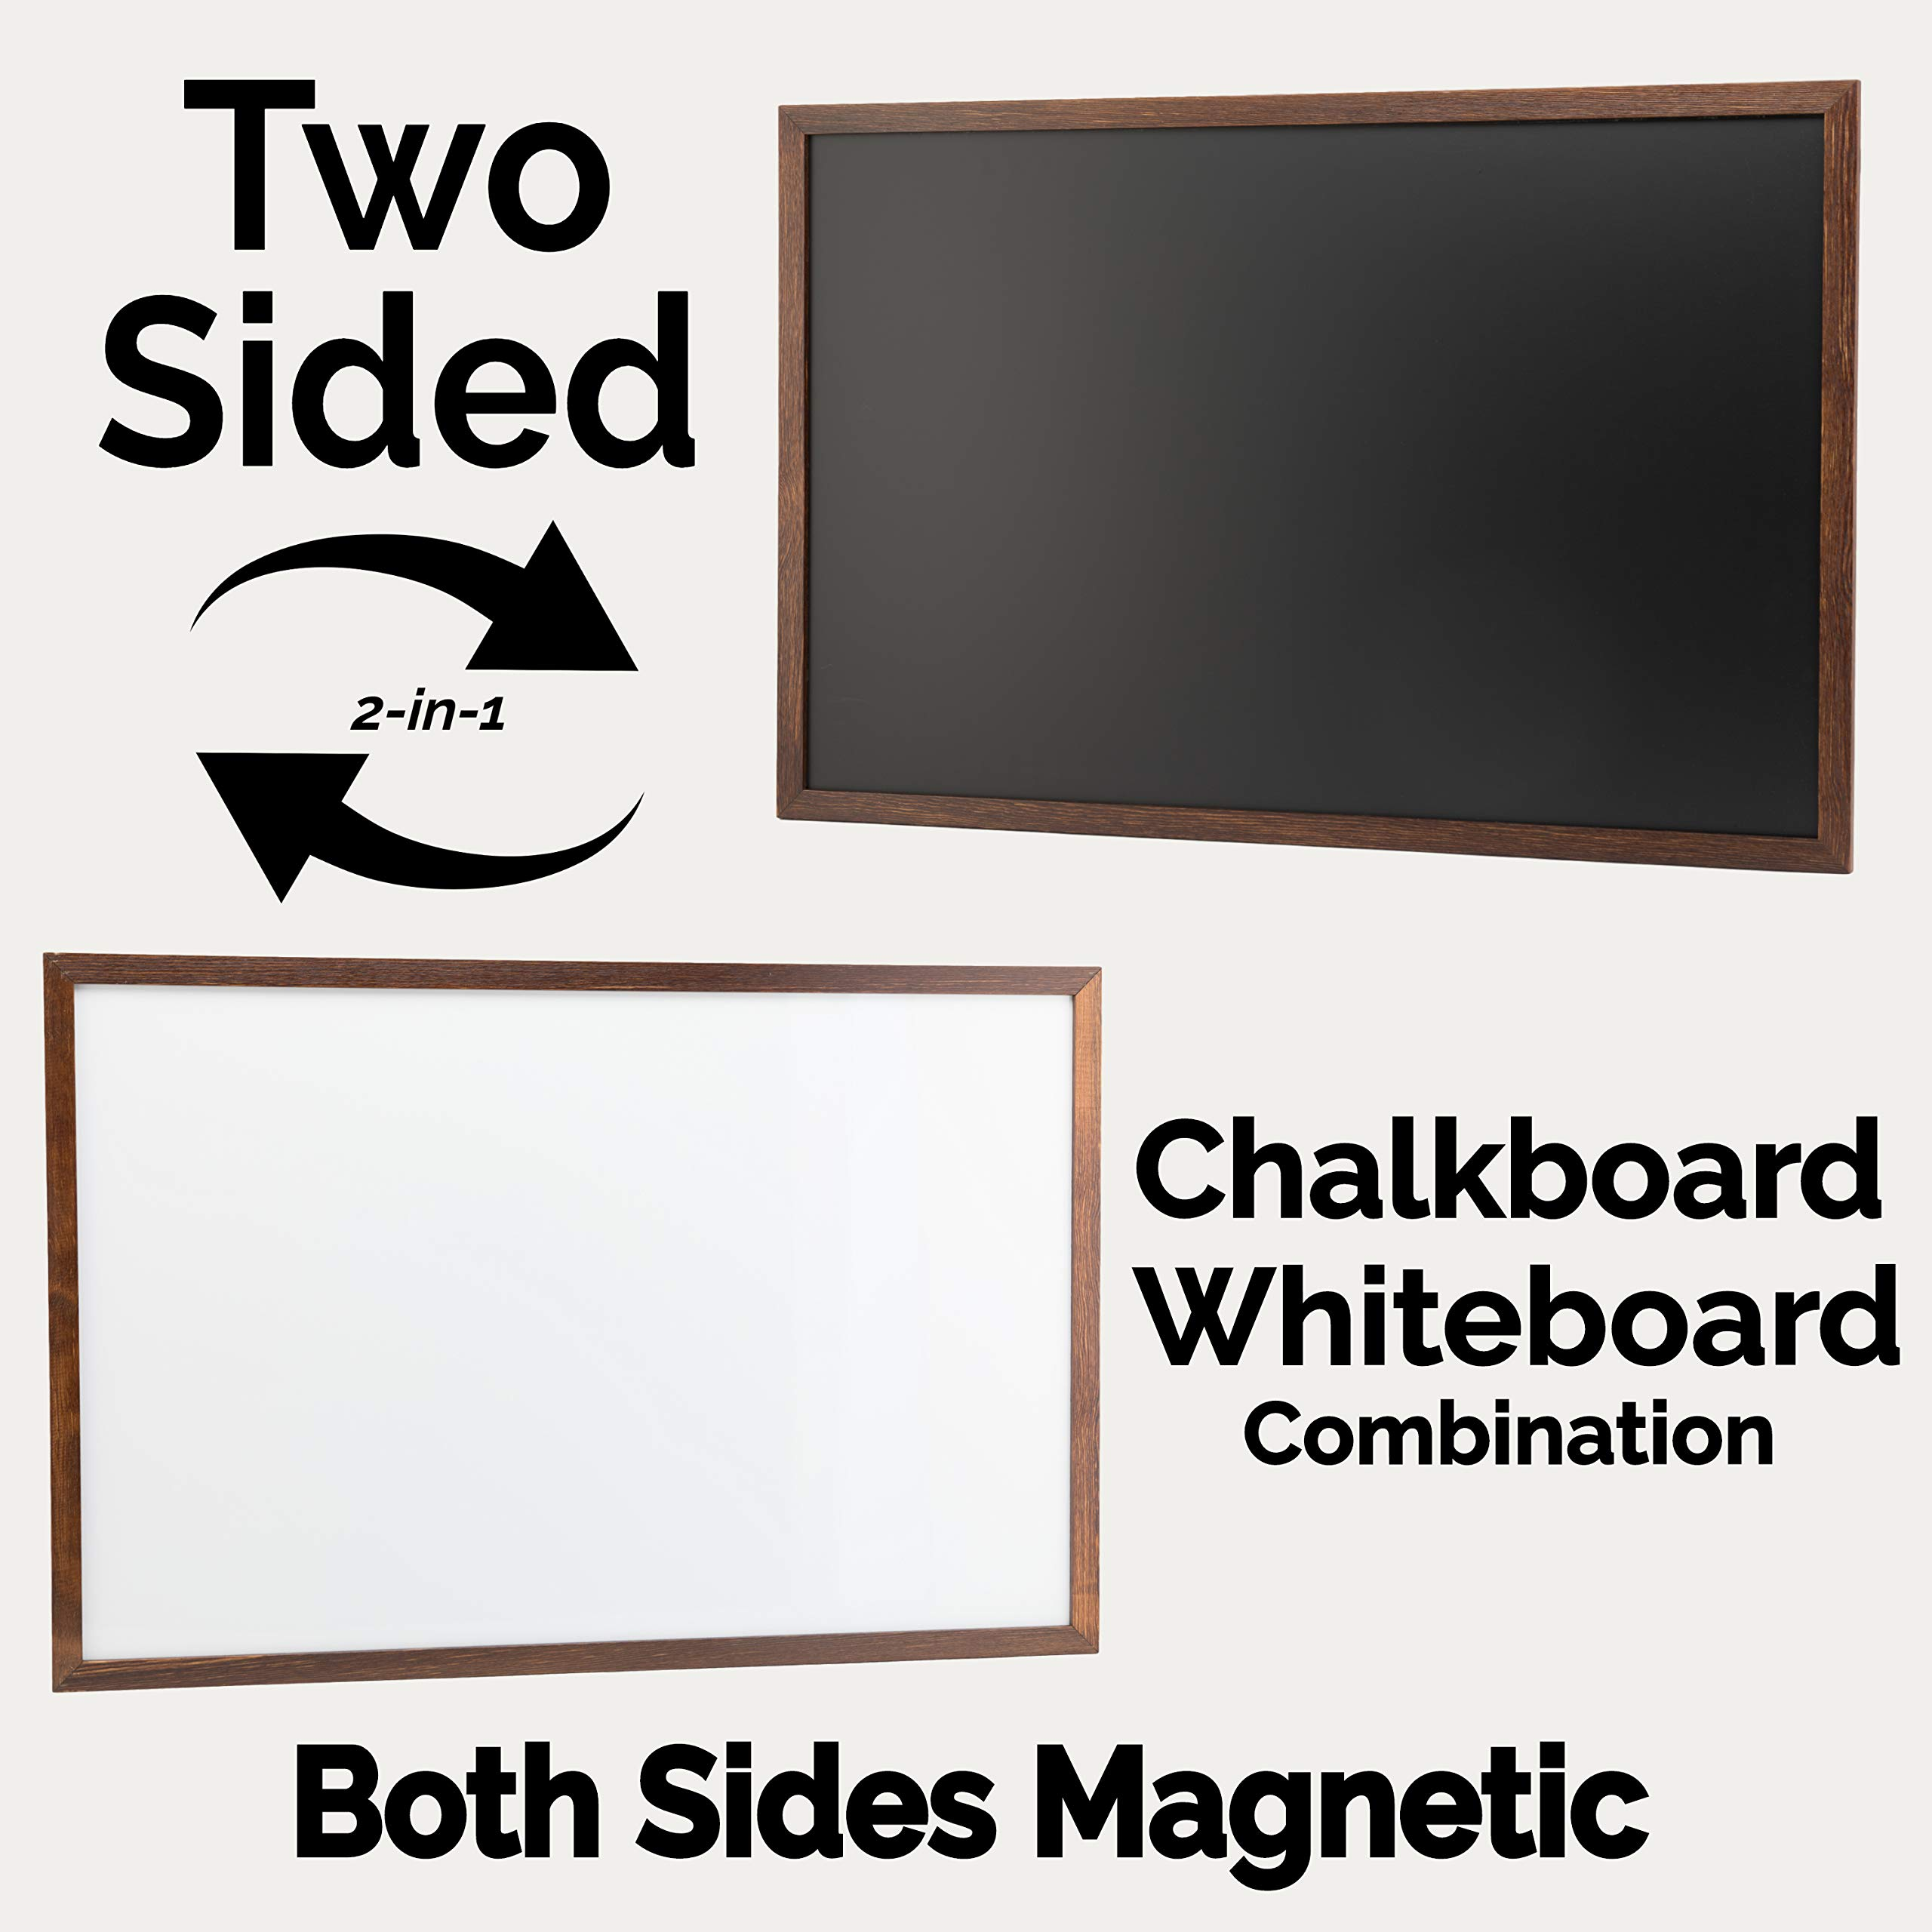 Metal Frame Includes Chalk and Magnets Navaris Double-Sided Chalkboard Whiteboard 16 x 24 Wall Blackboard Magnetic Dry Erase Message Board